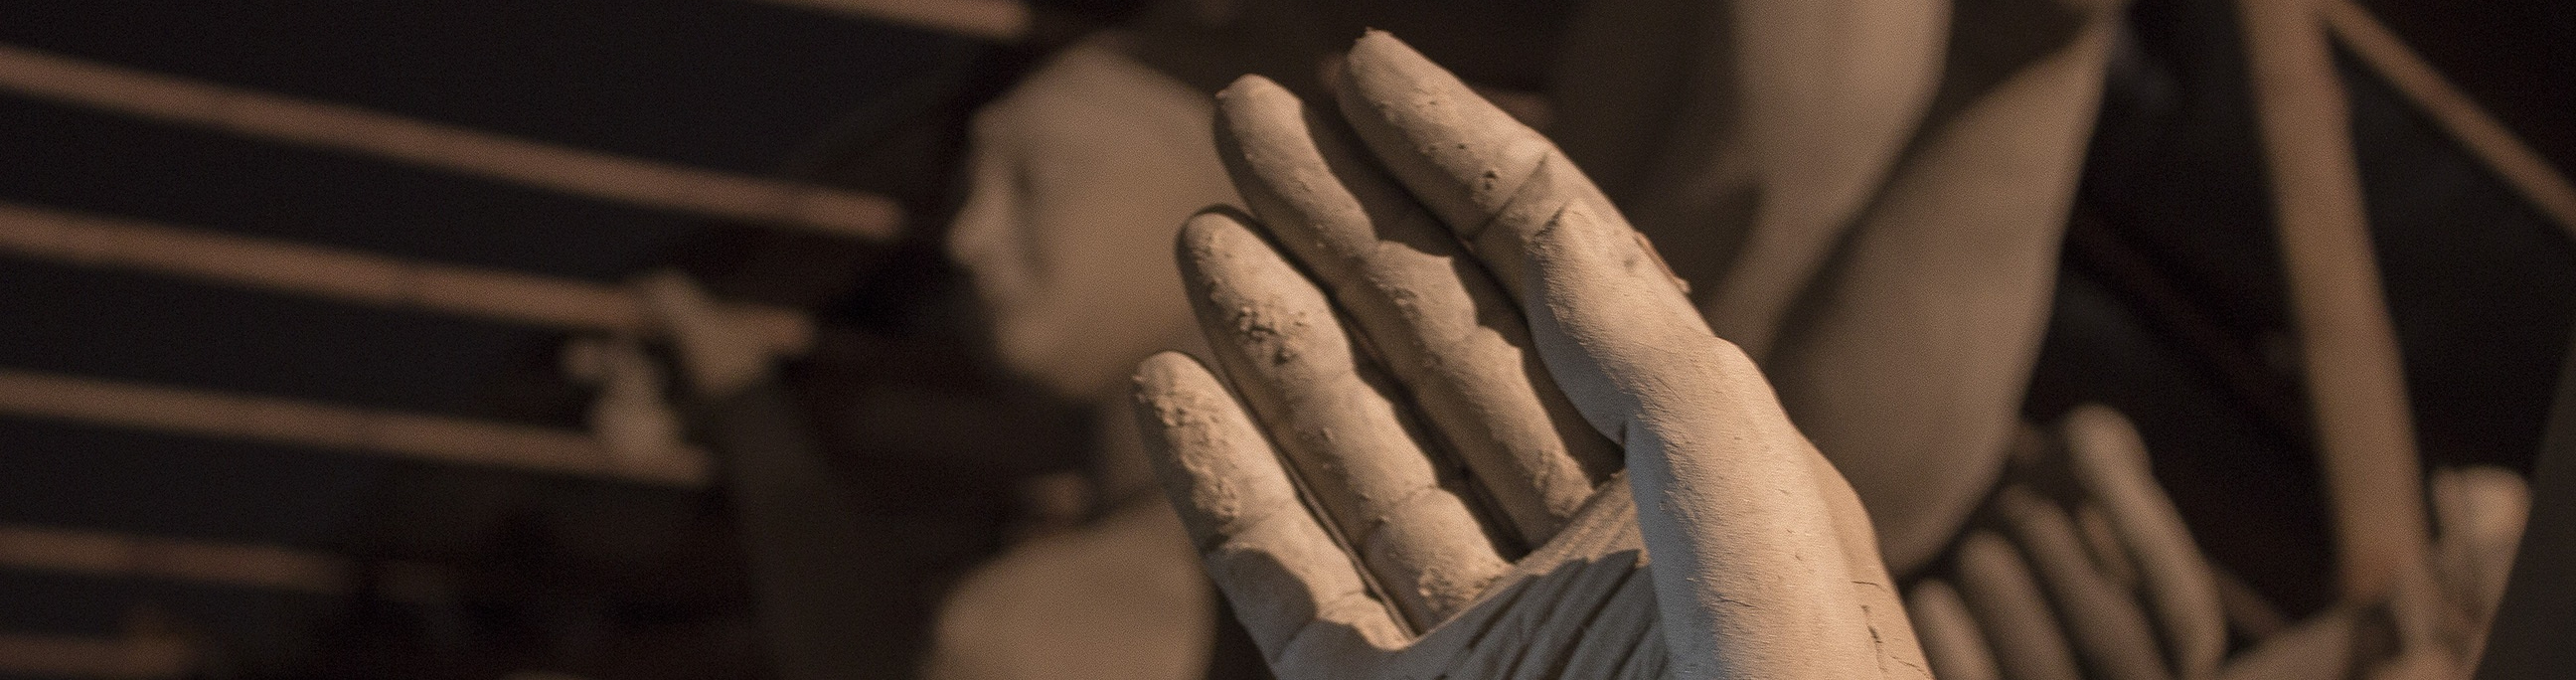 A close-up of a clay human hand. Behind the hand are a multitude of clay bodies.